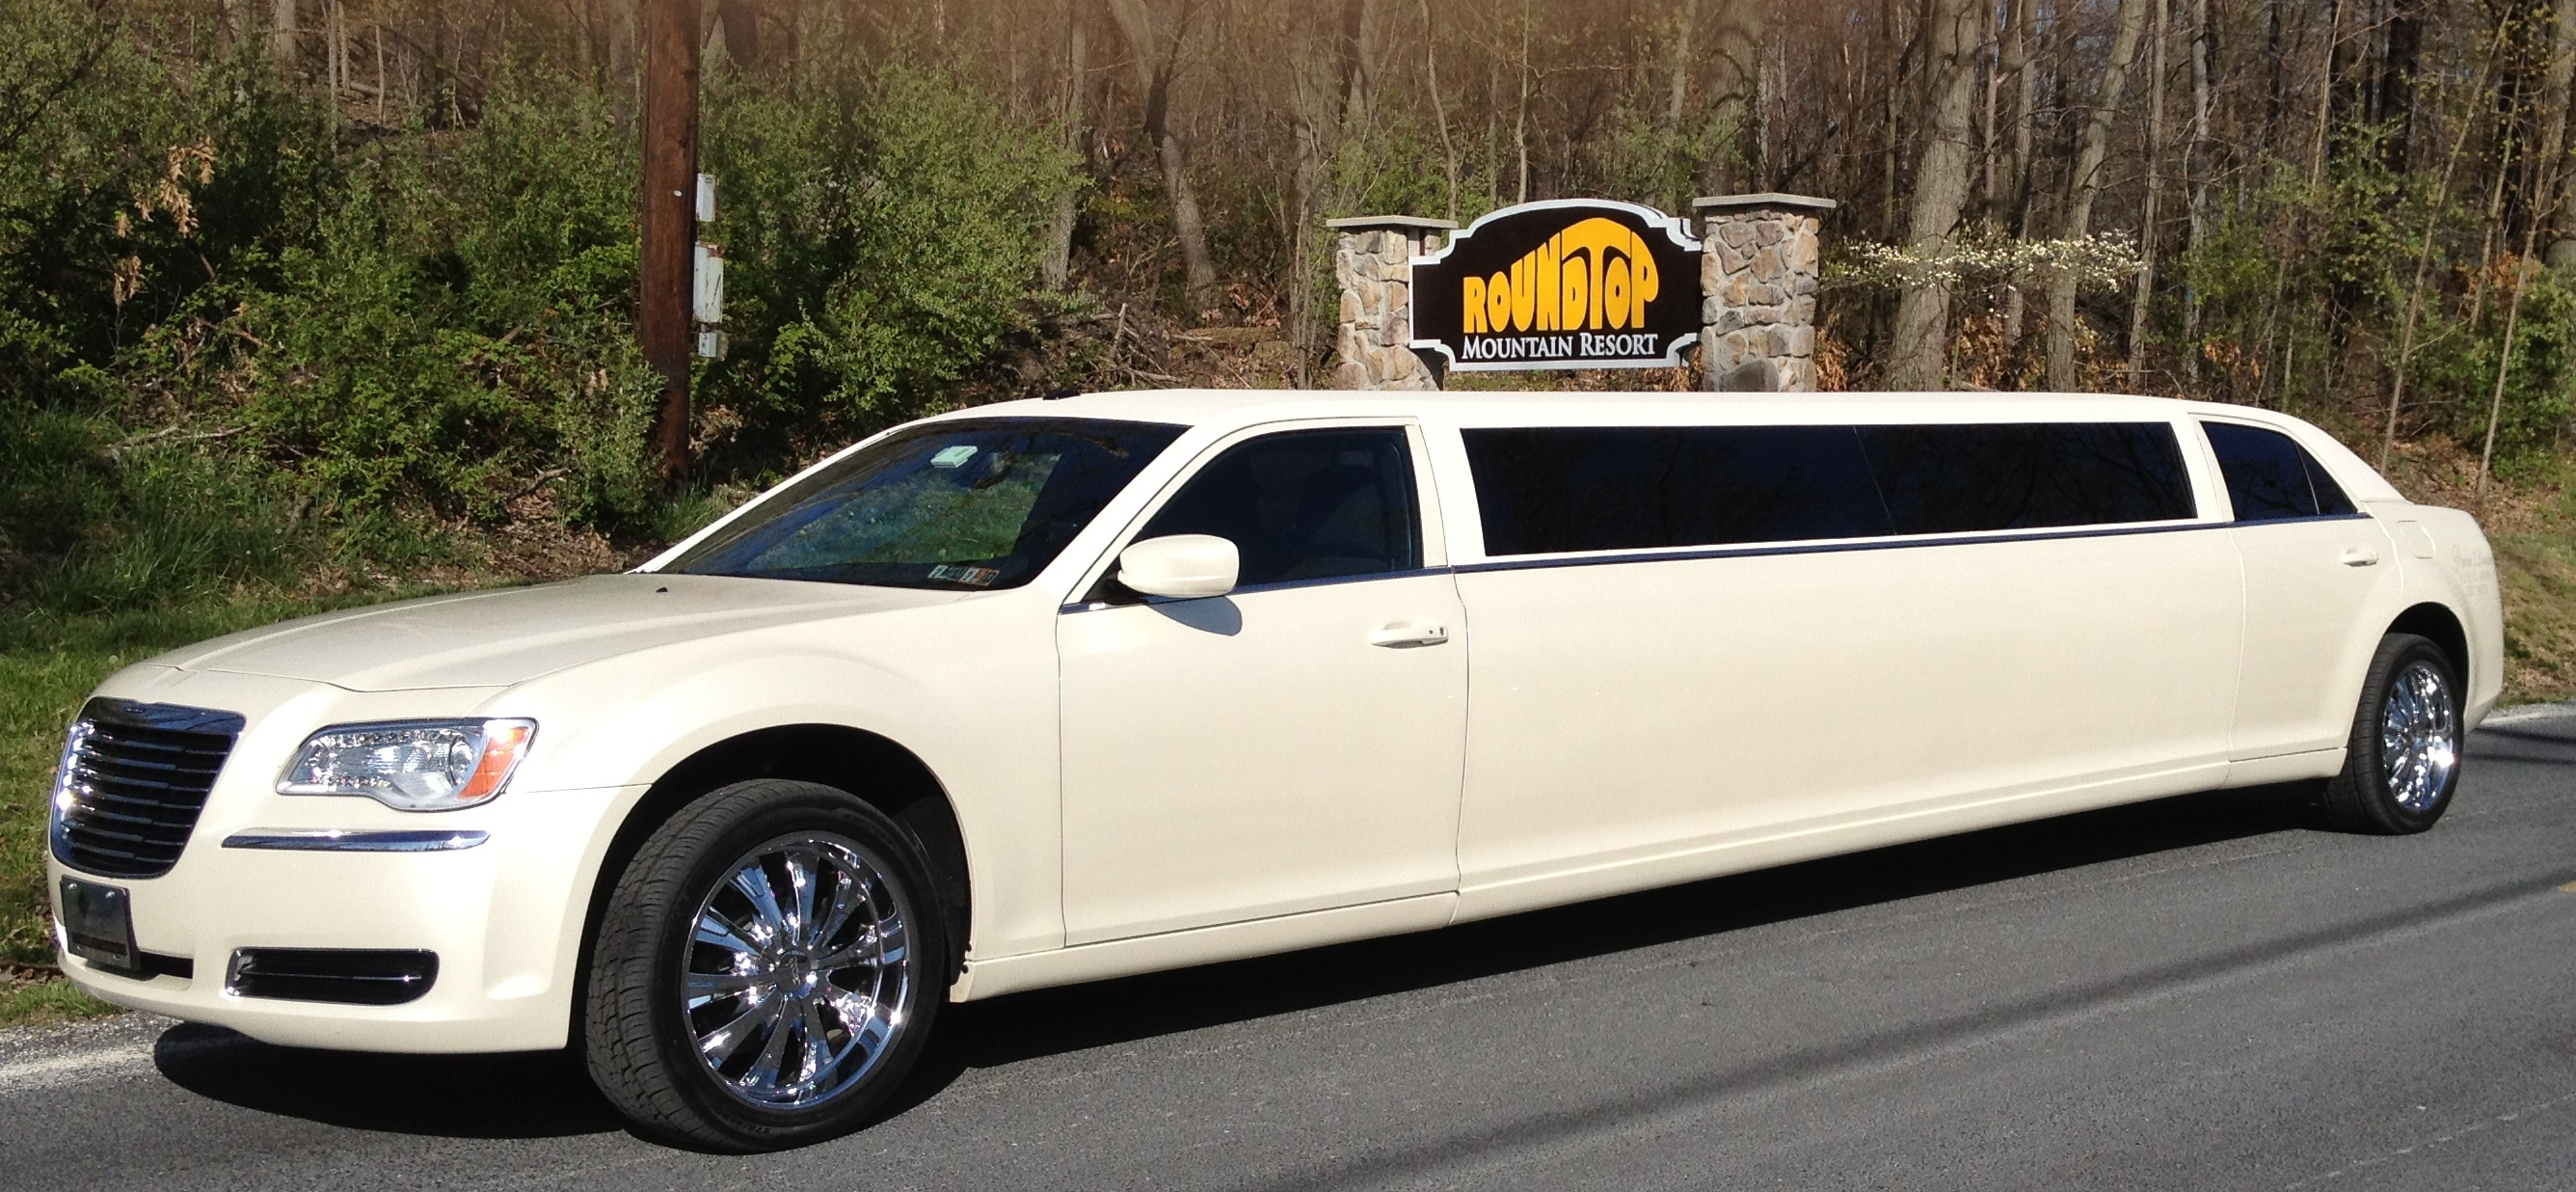 Premiere 1 Limousine.jpg